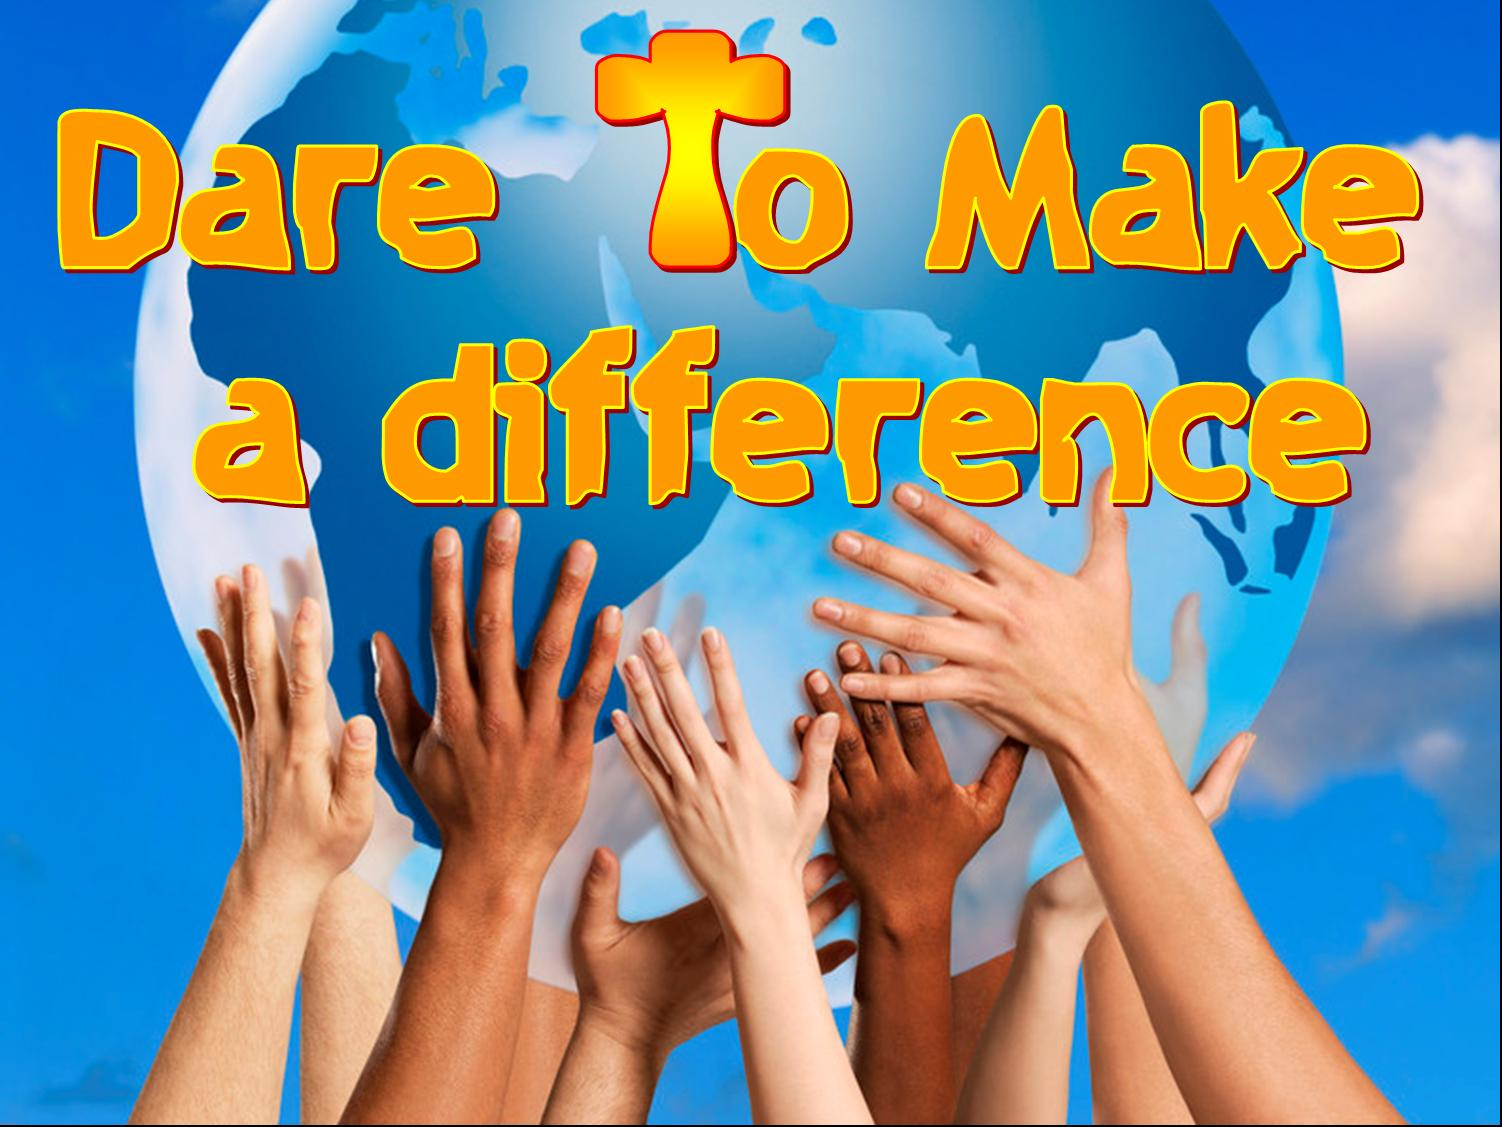 Make a difference clipart.